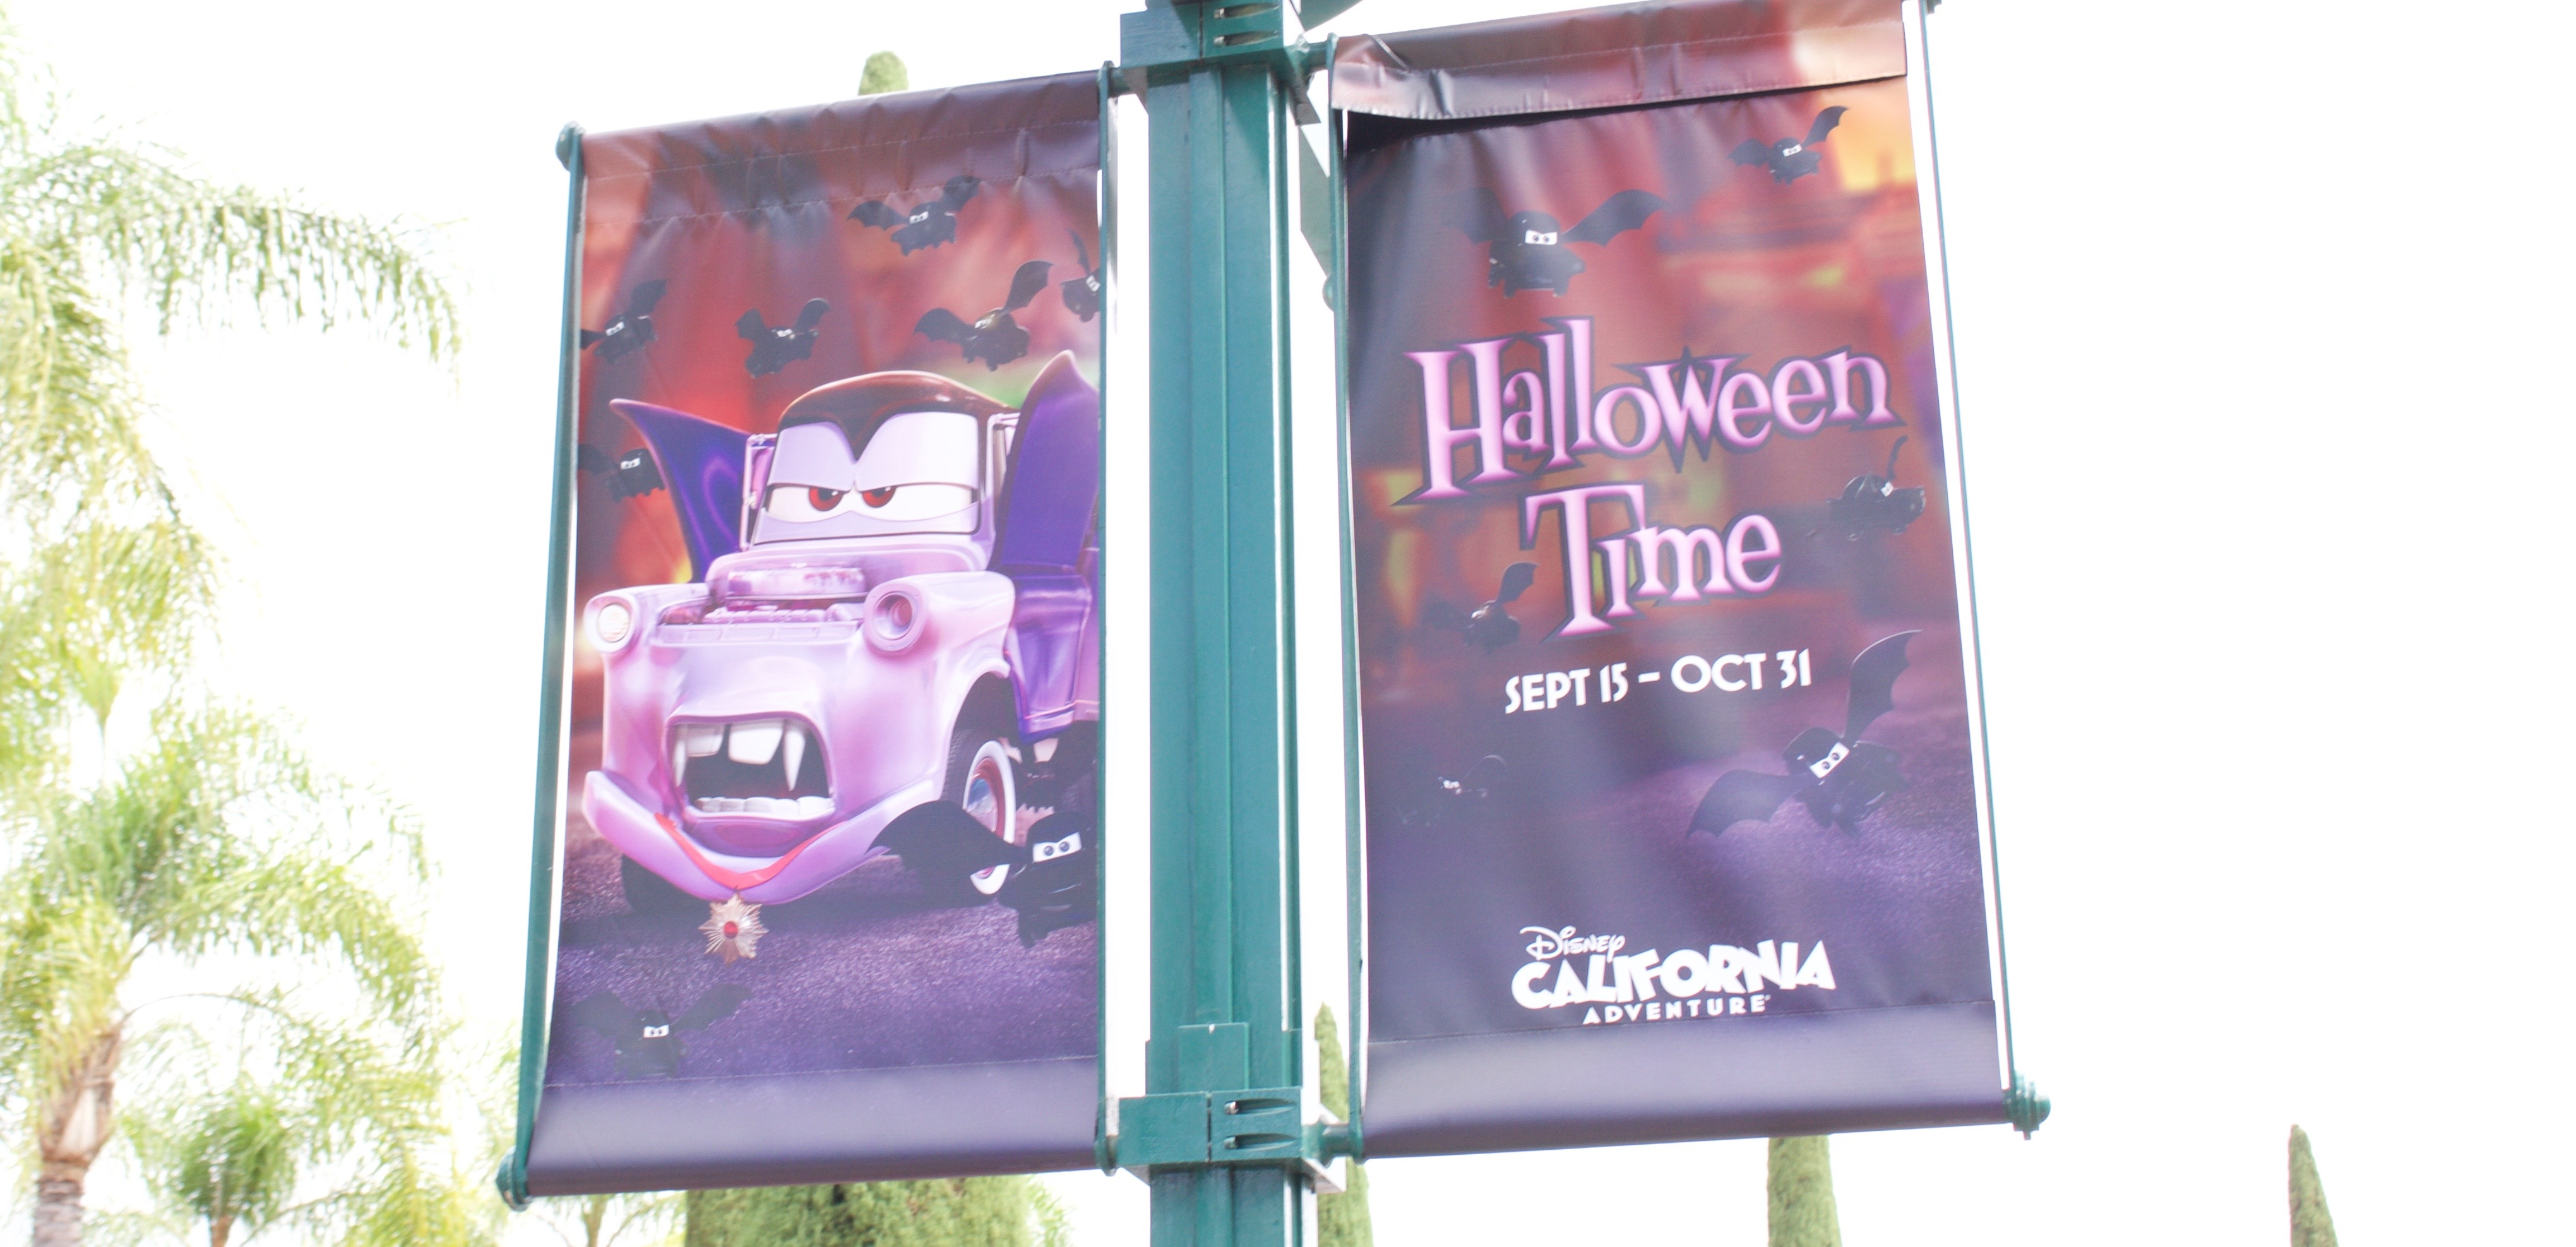 halloween time at Disneyland dates